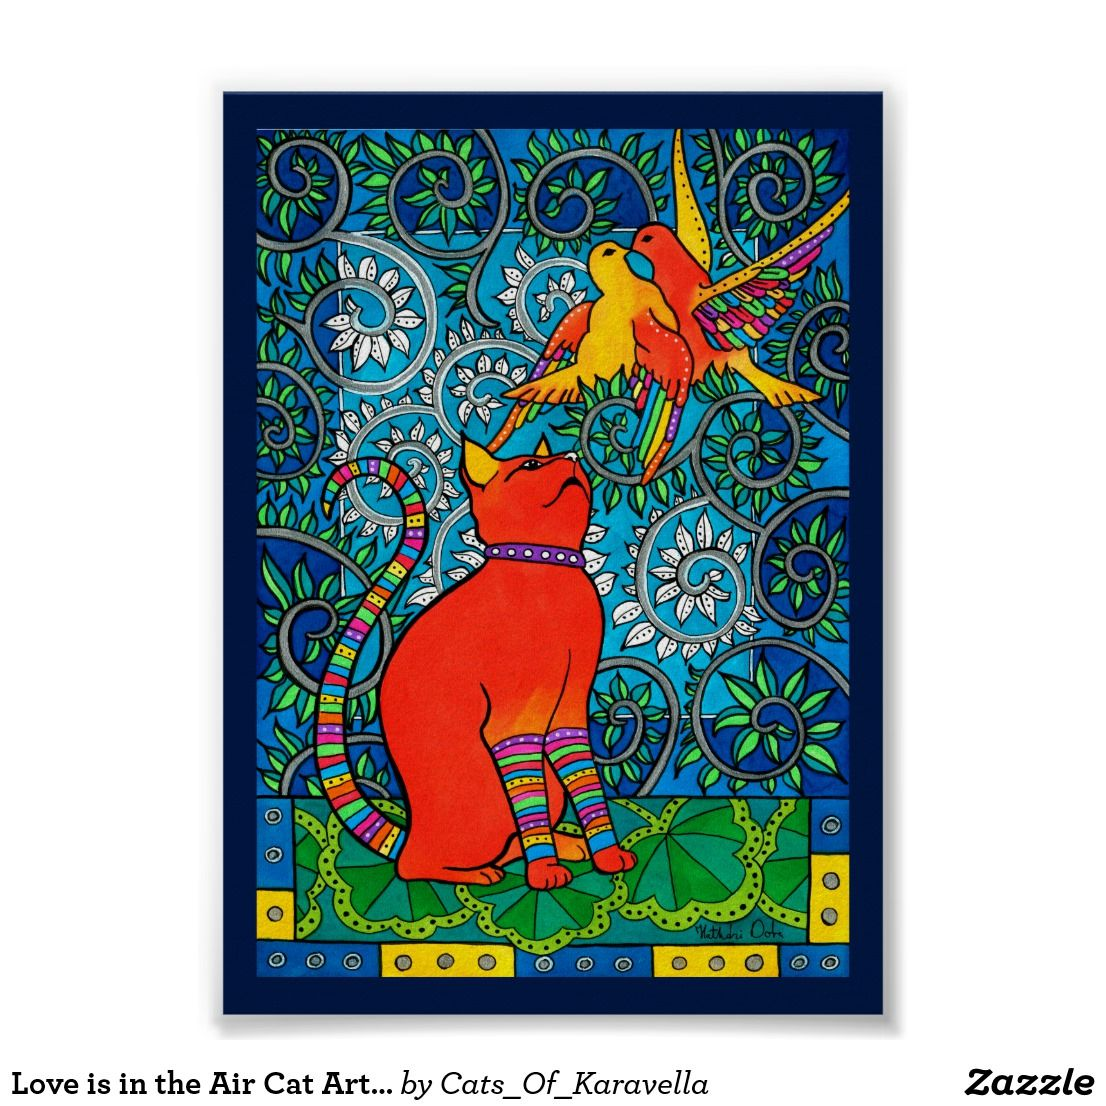 Love is in the Air Cat Art by Cats of Karavella Poster by Dora Hathazi Mendes